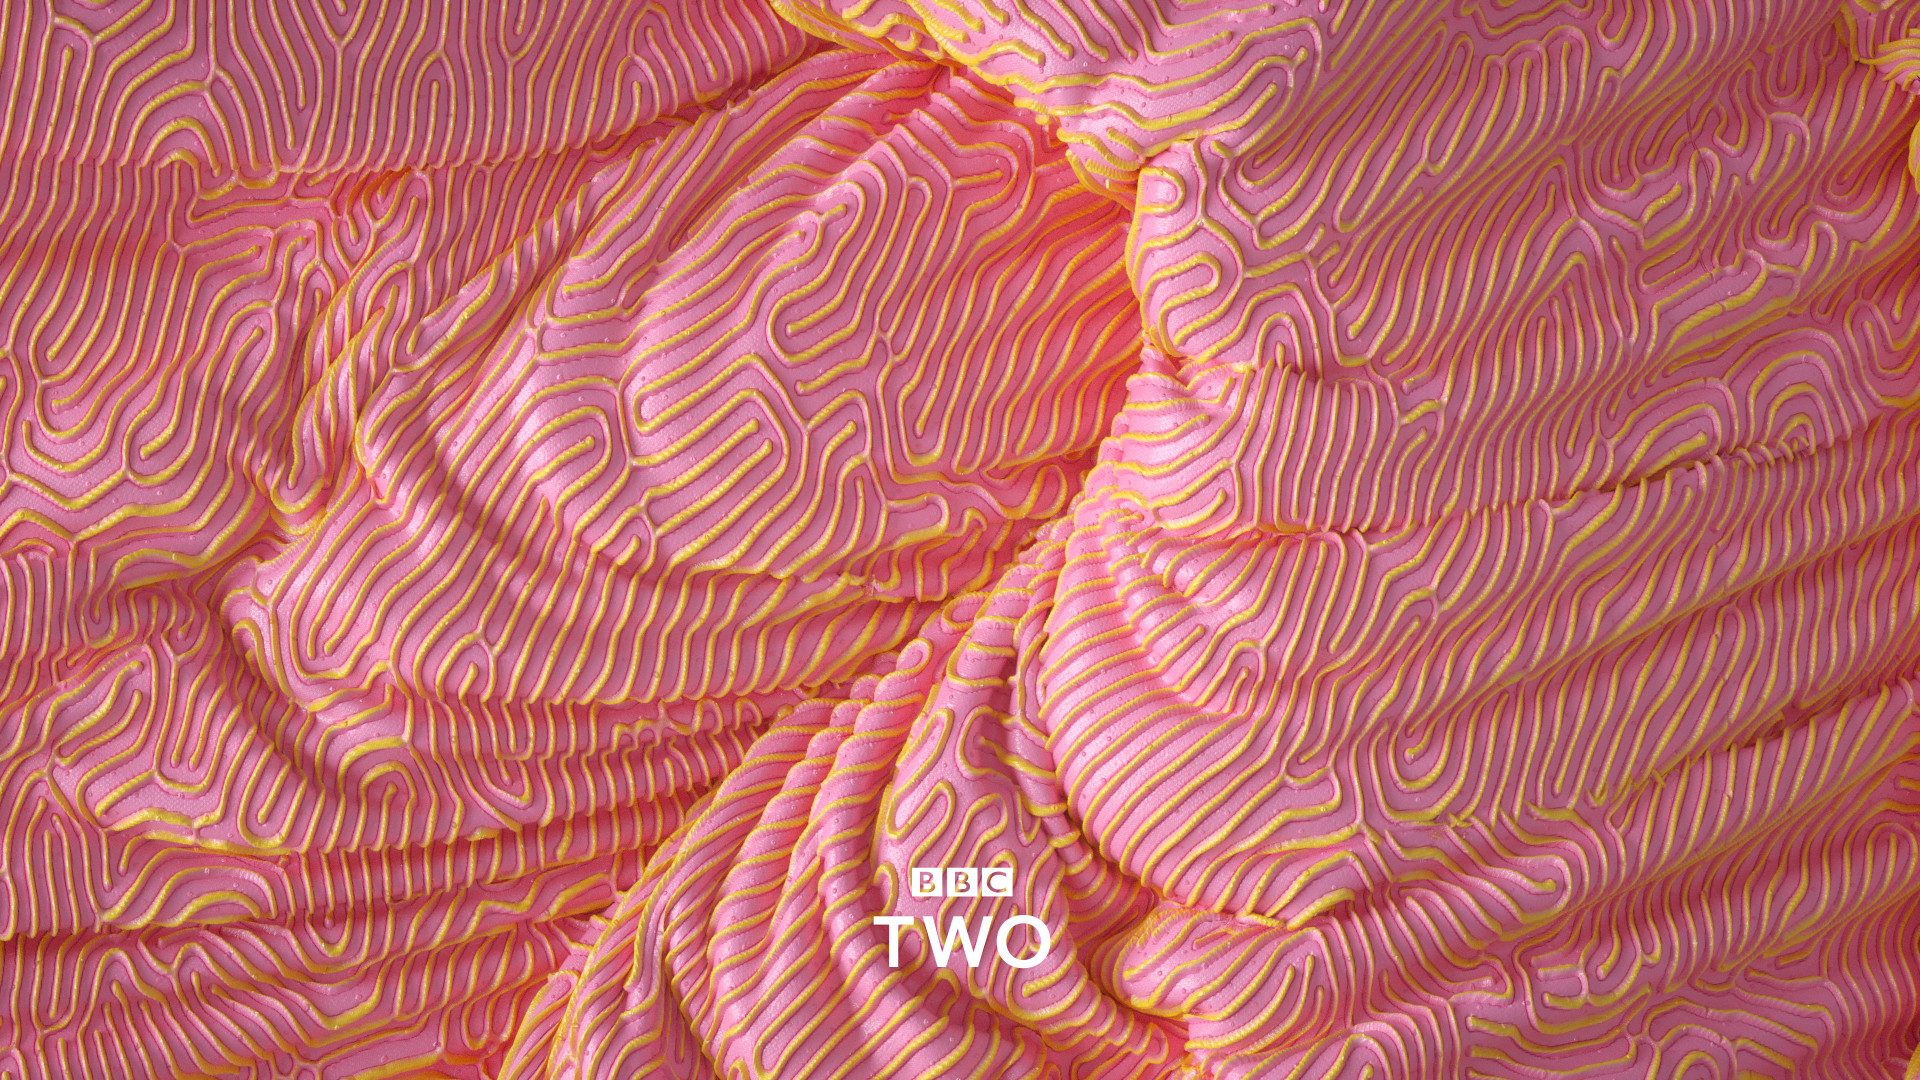 BBC_two_11